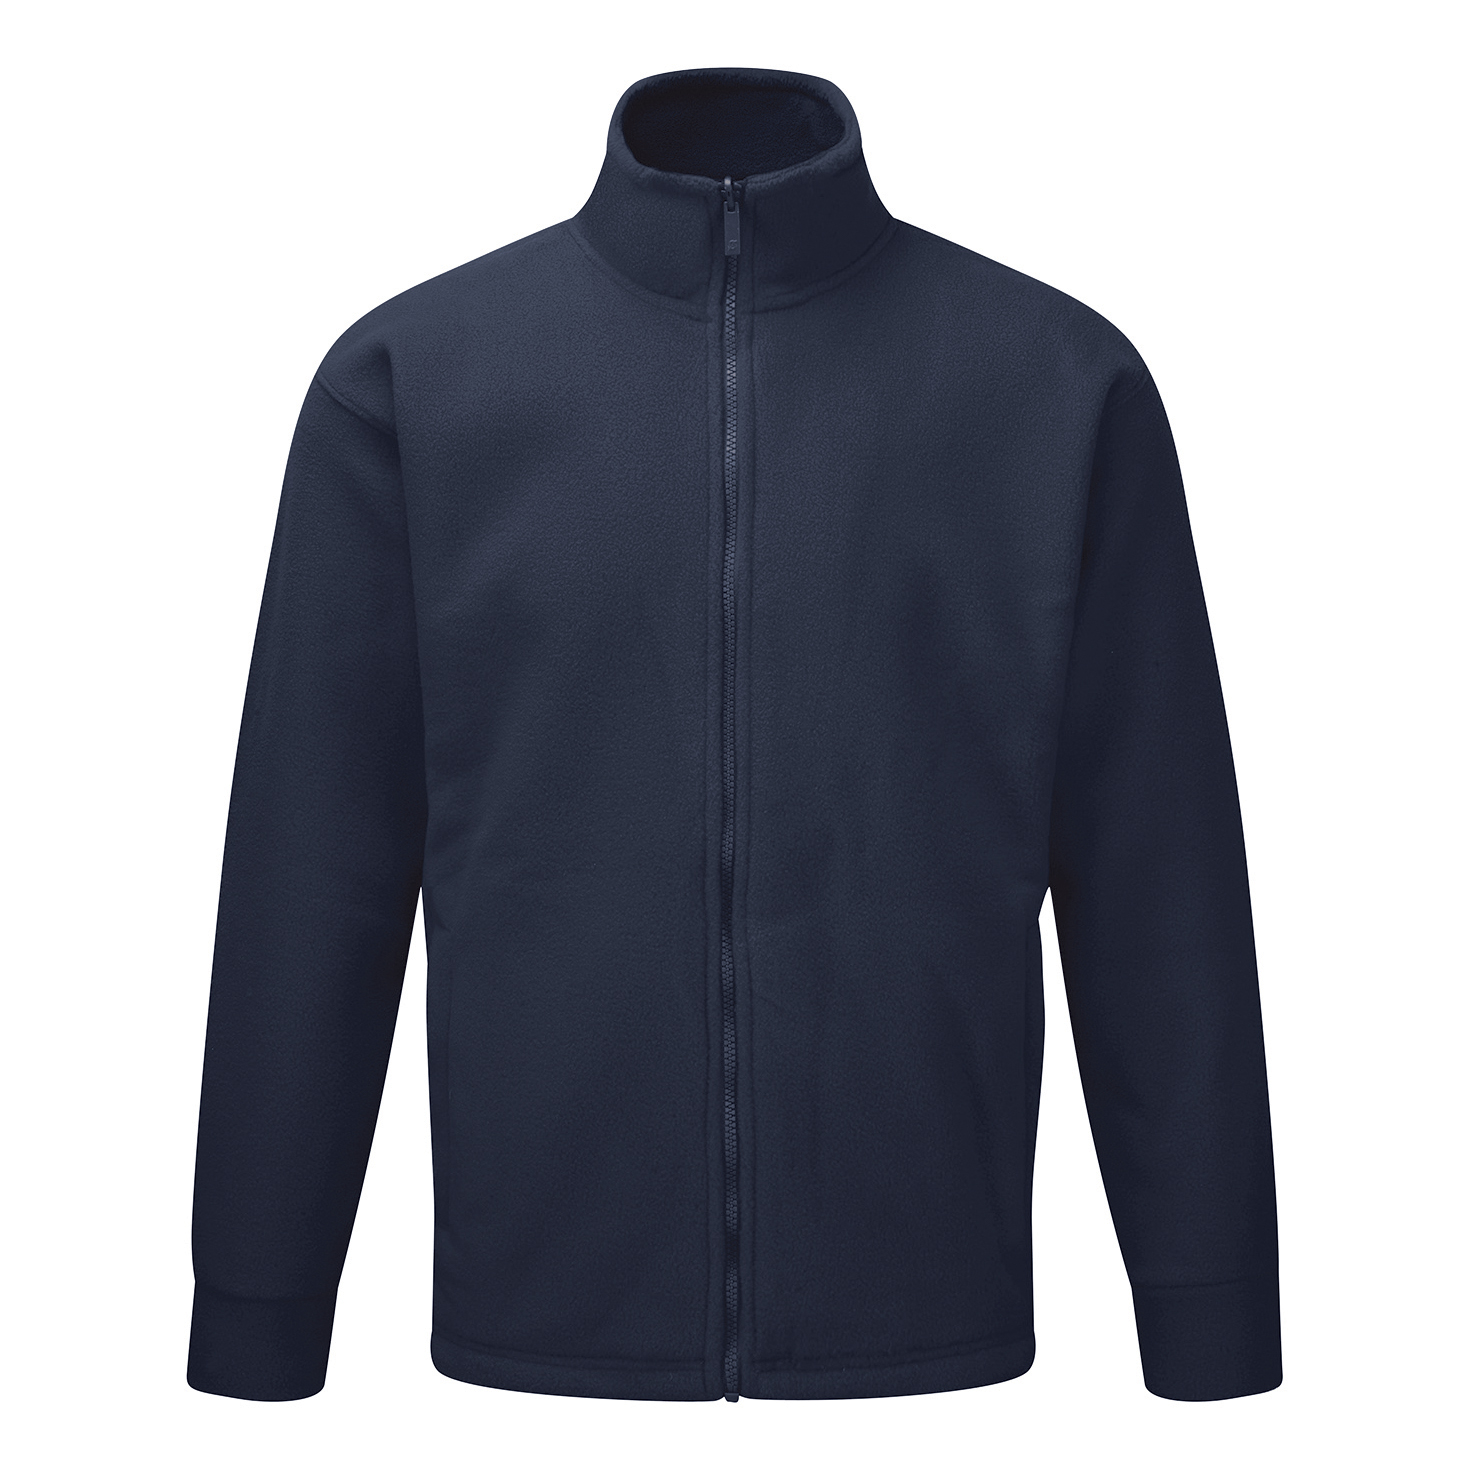 ST Basic Fleece Jacket Elasticated Cuffs and Full Zip Front XXXLarge Navy Ref 59096 *Approx 3 Day L/Time*